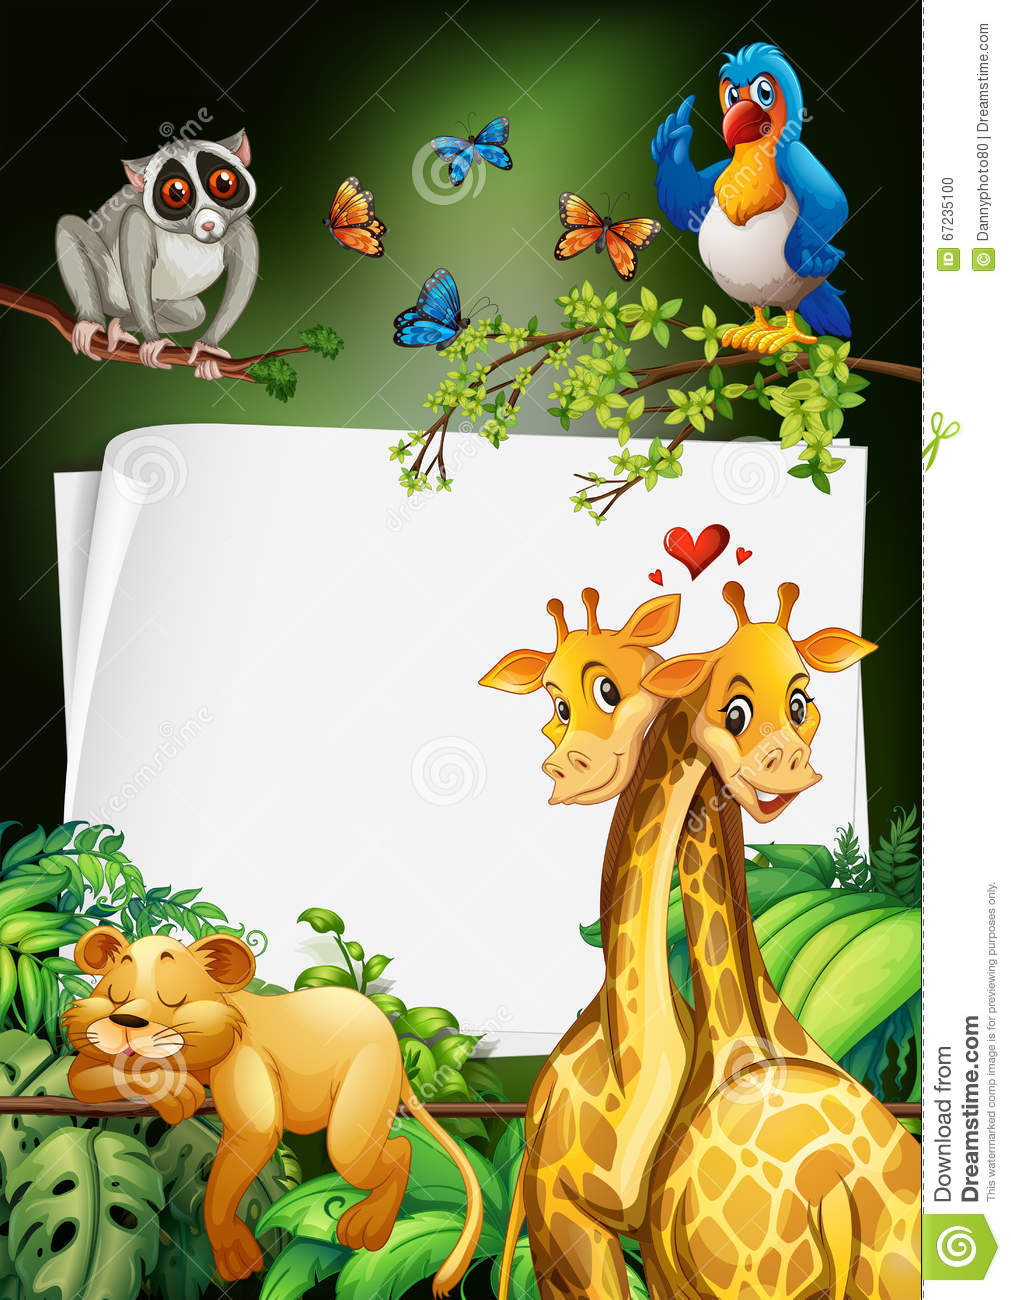 Paper design with wild animals background stock for Wild design